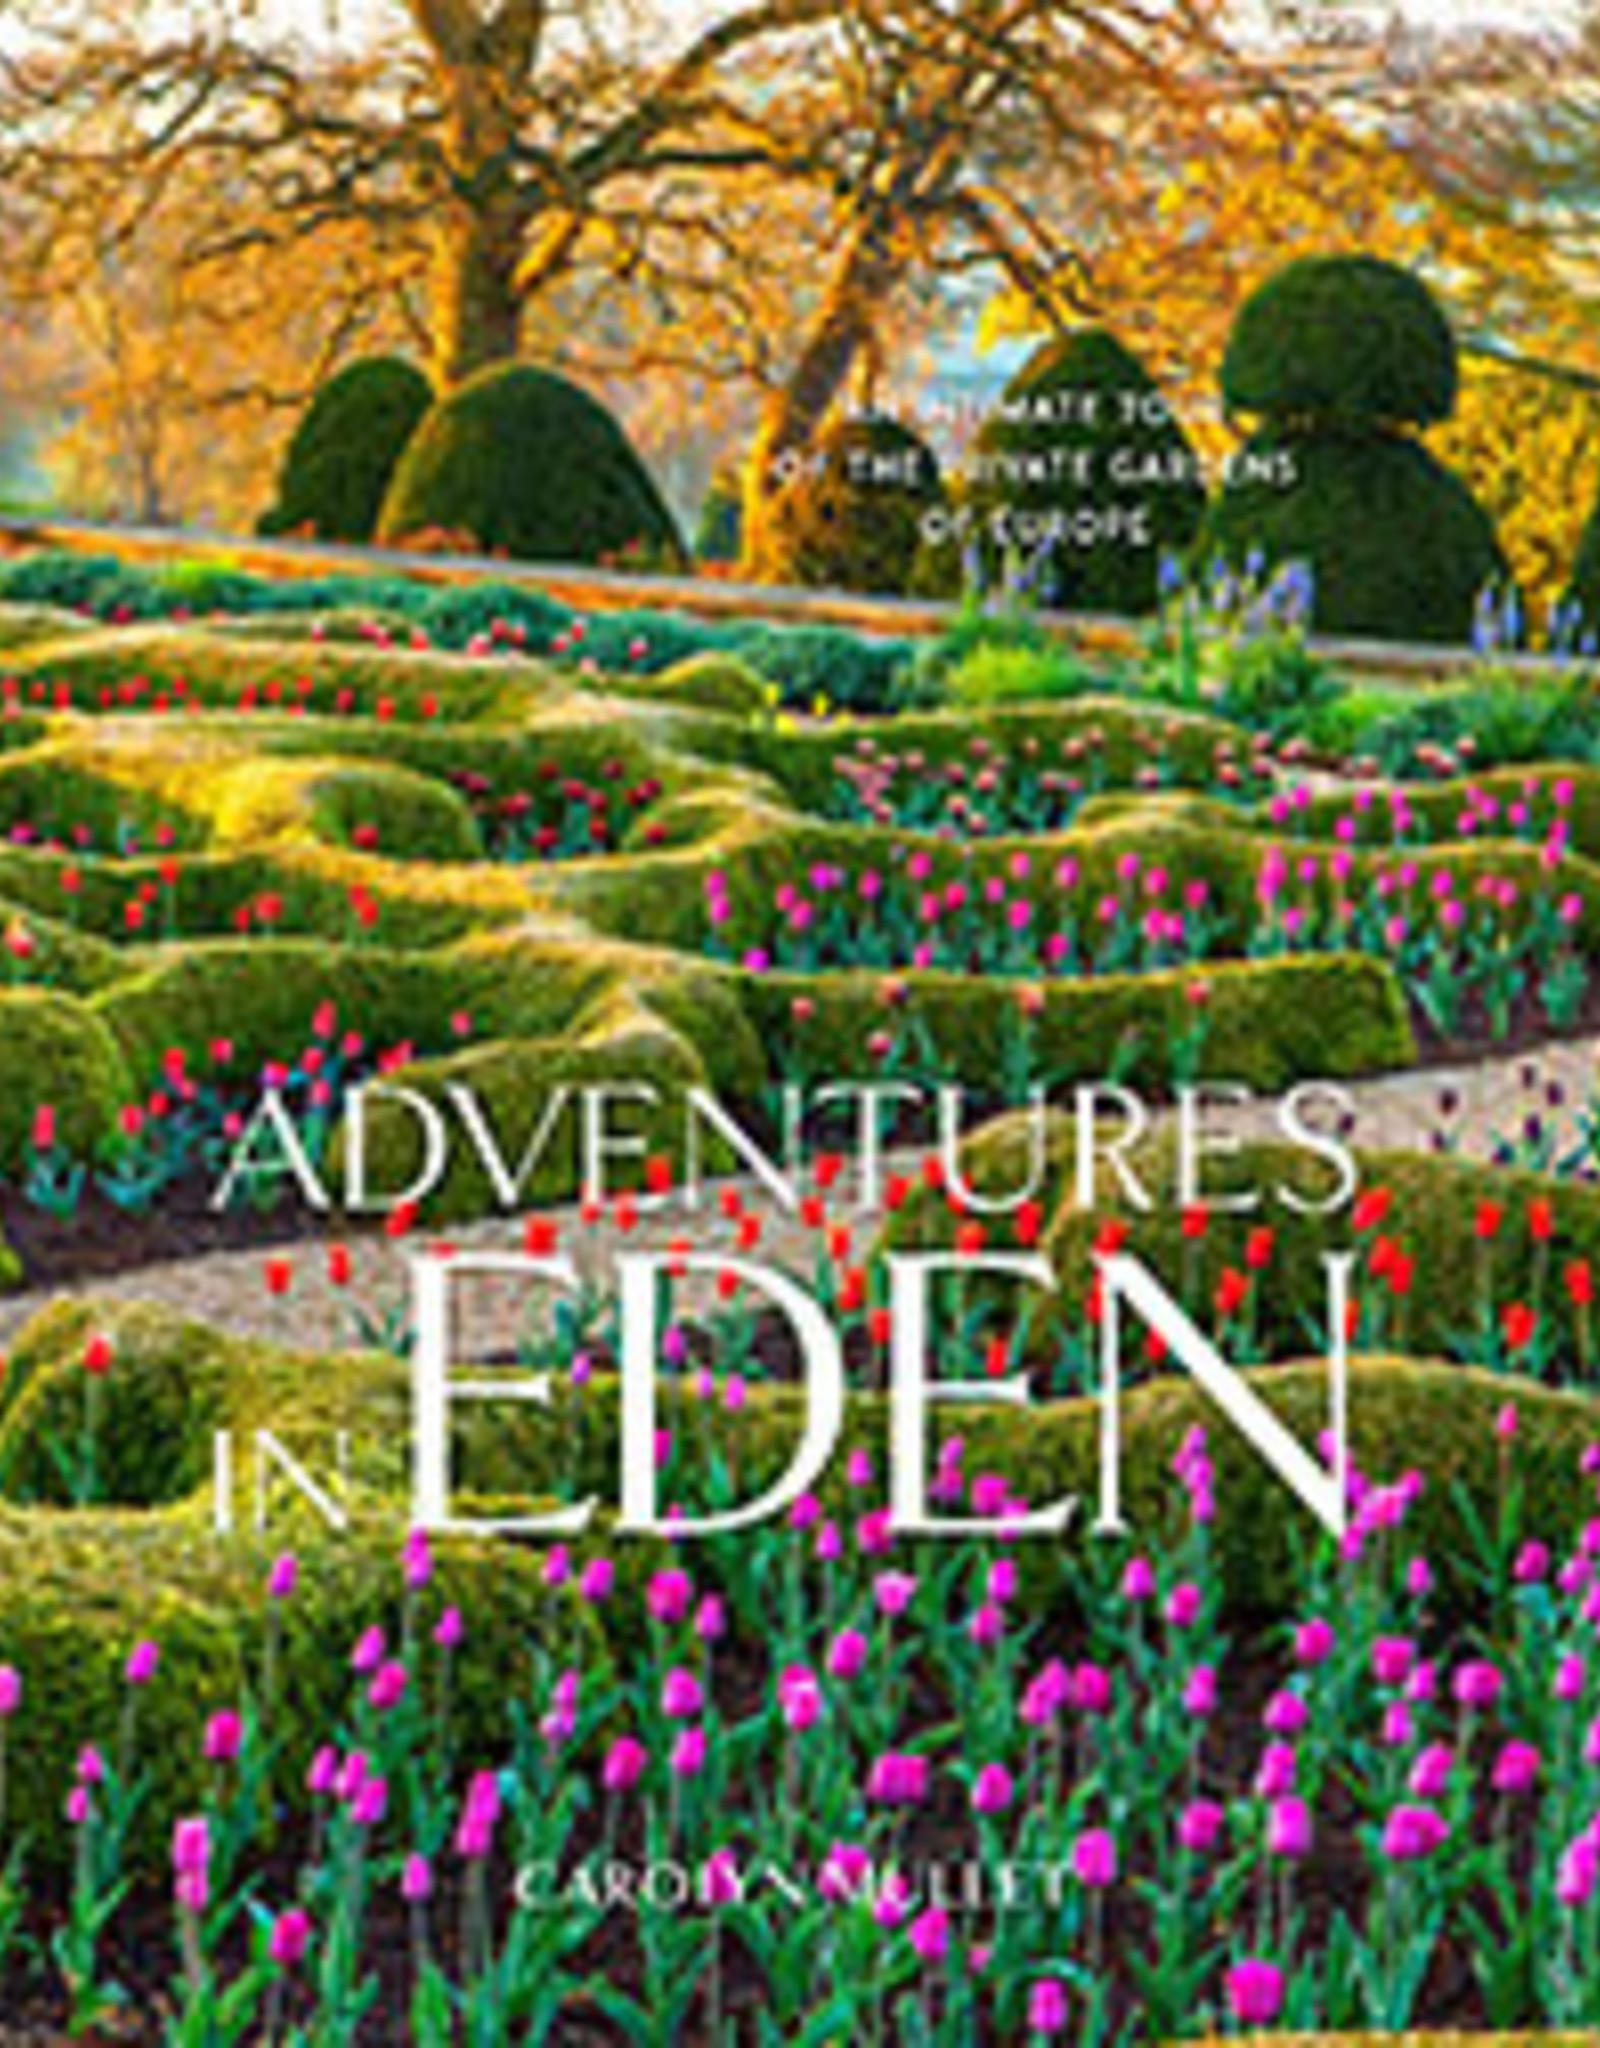 Website Adventures in Eden